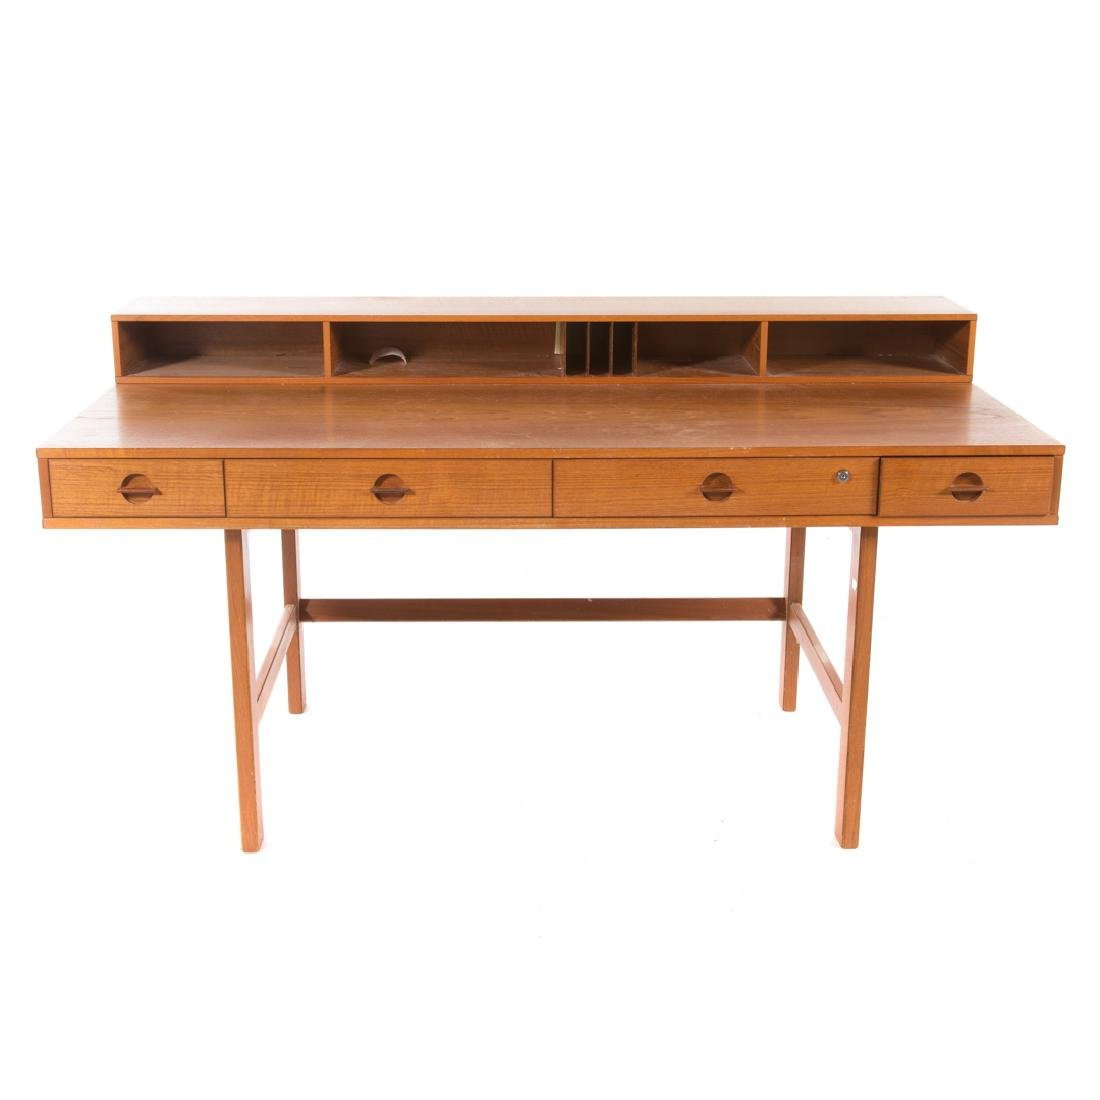 Peter Løvig Nielsen flip-top teakwood desk - 2